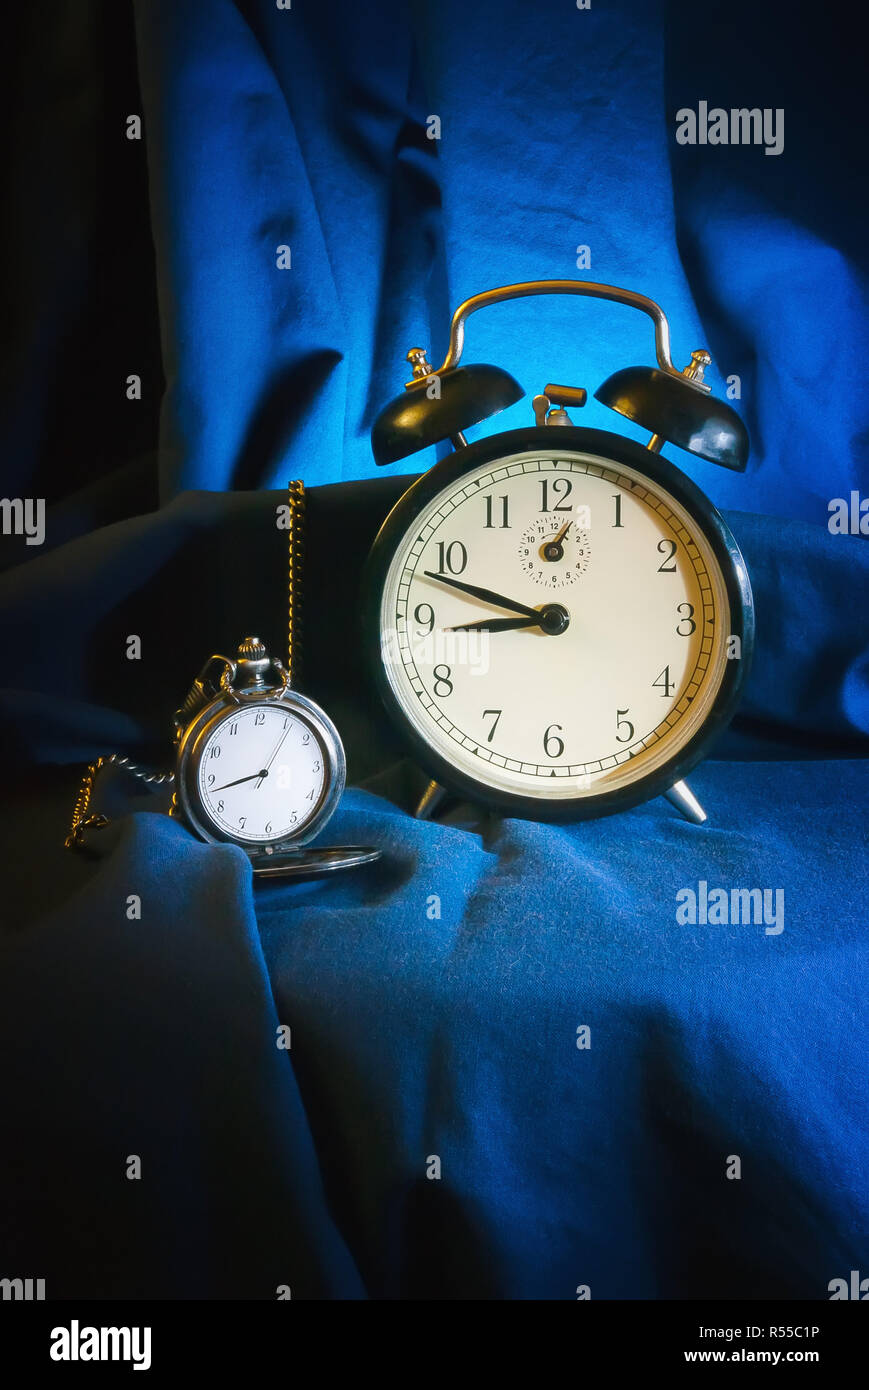 Antique Watch And Alarm Clock - Stock Image